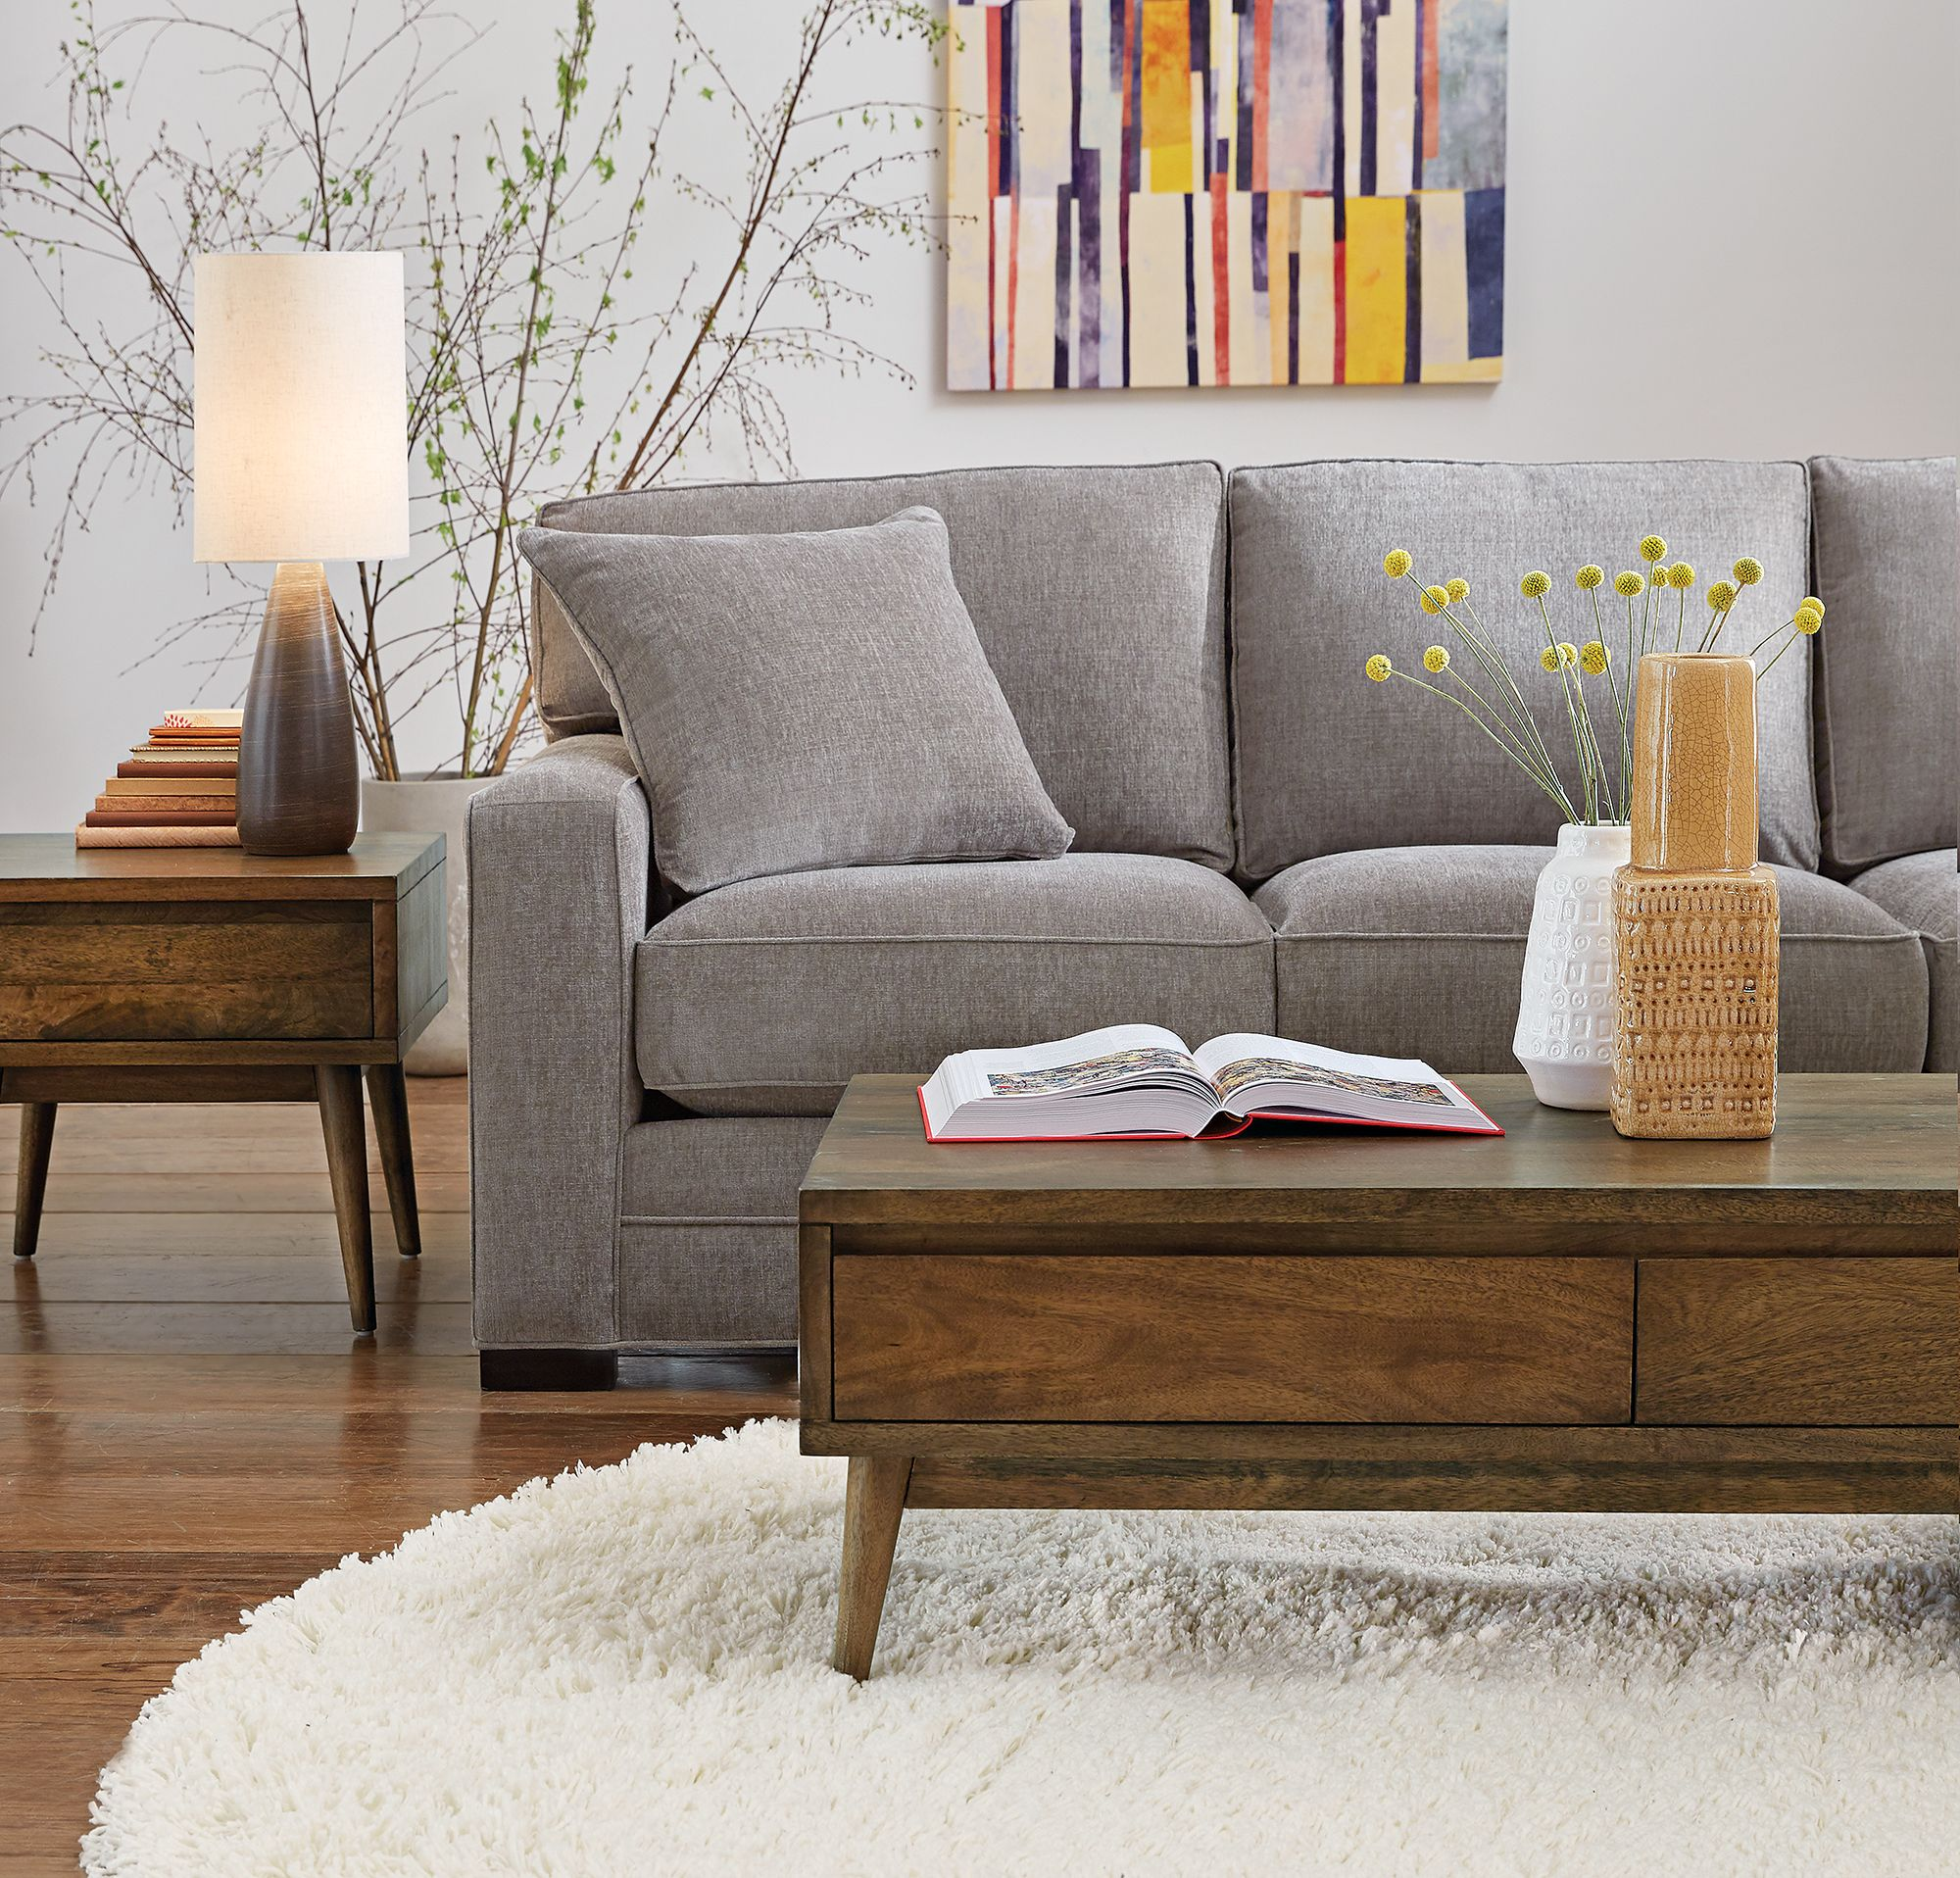 Keep It In Neutral With A Lovely Grey Sofa For Fall